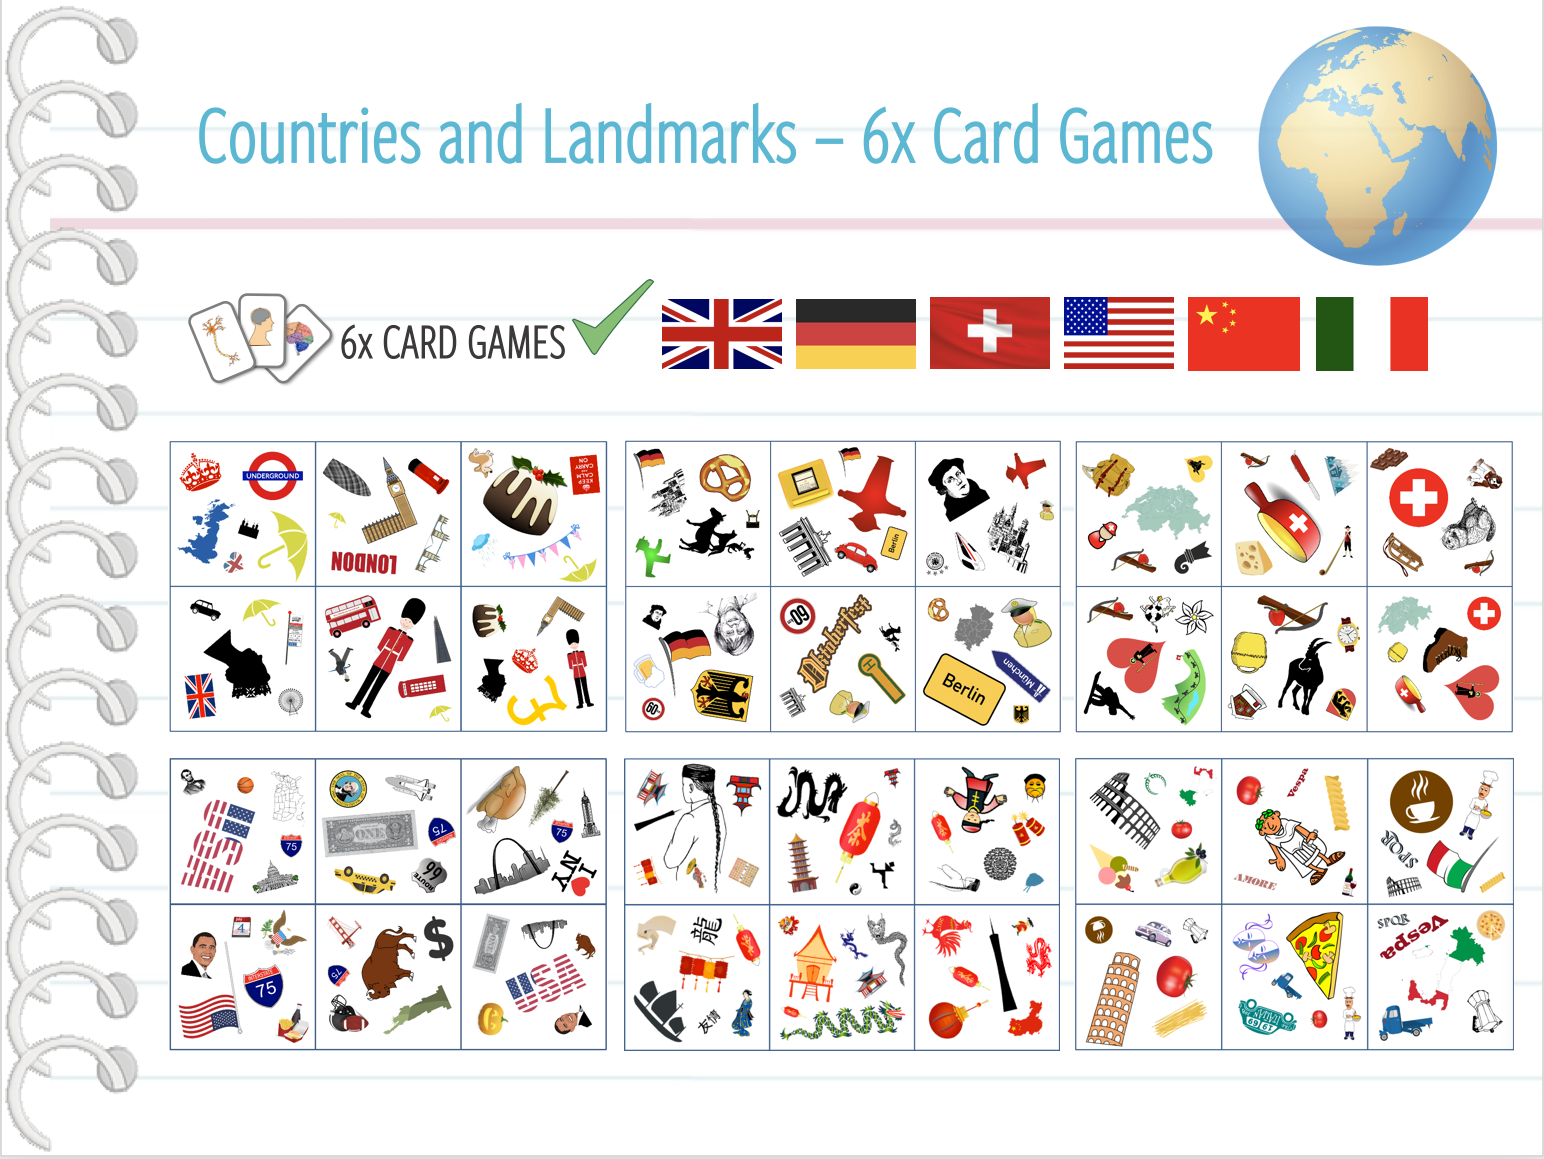 Countries of the World - 6x Card Games